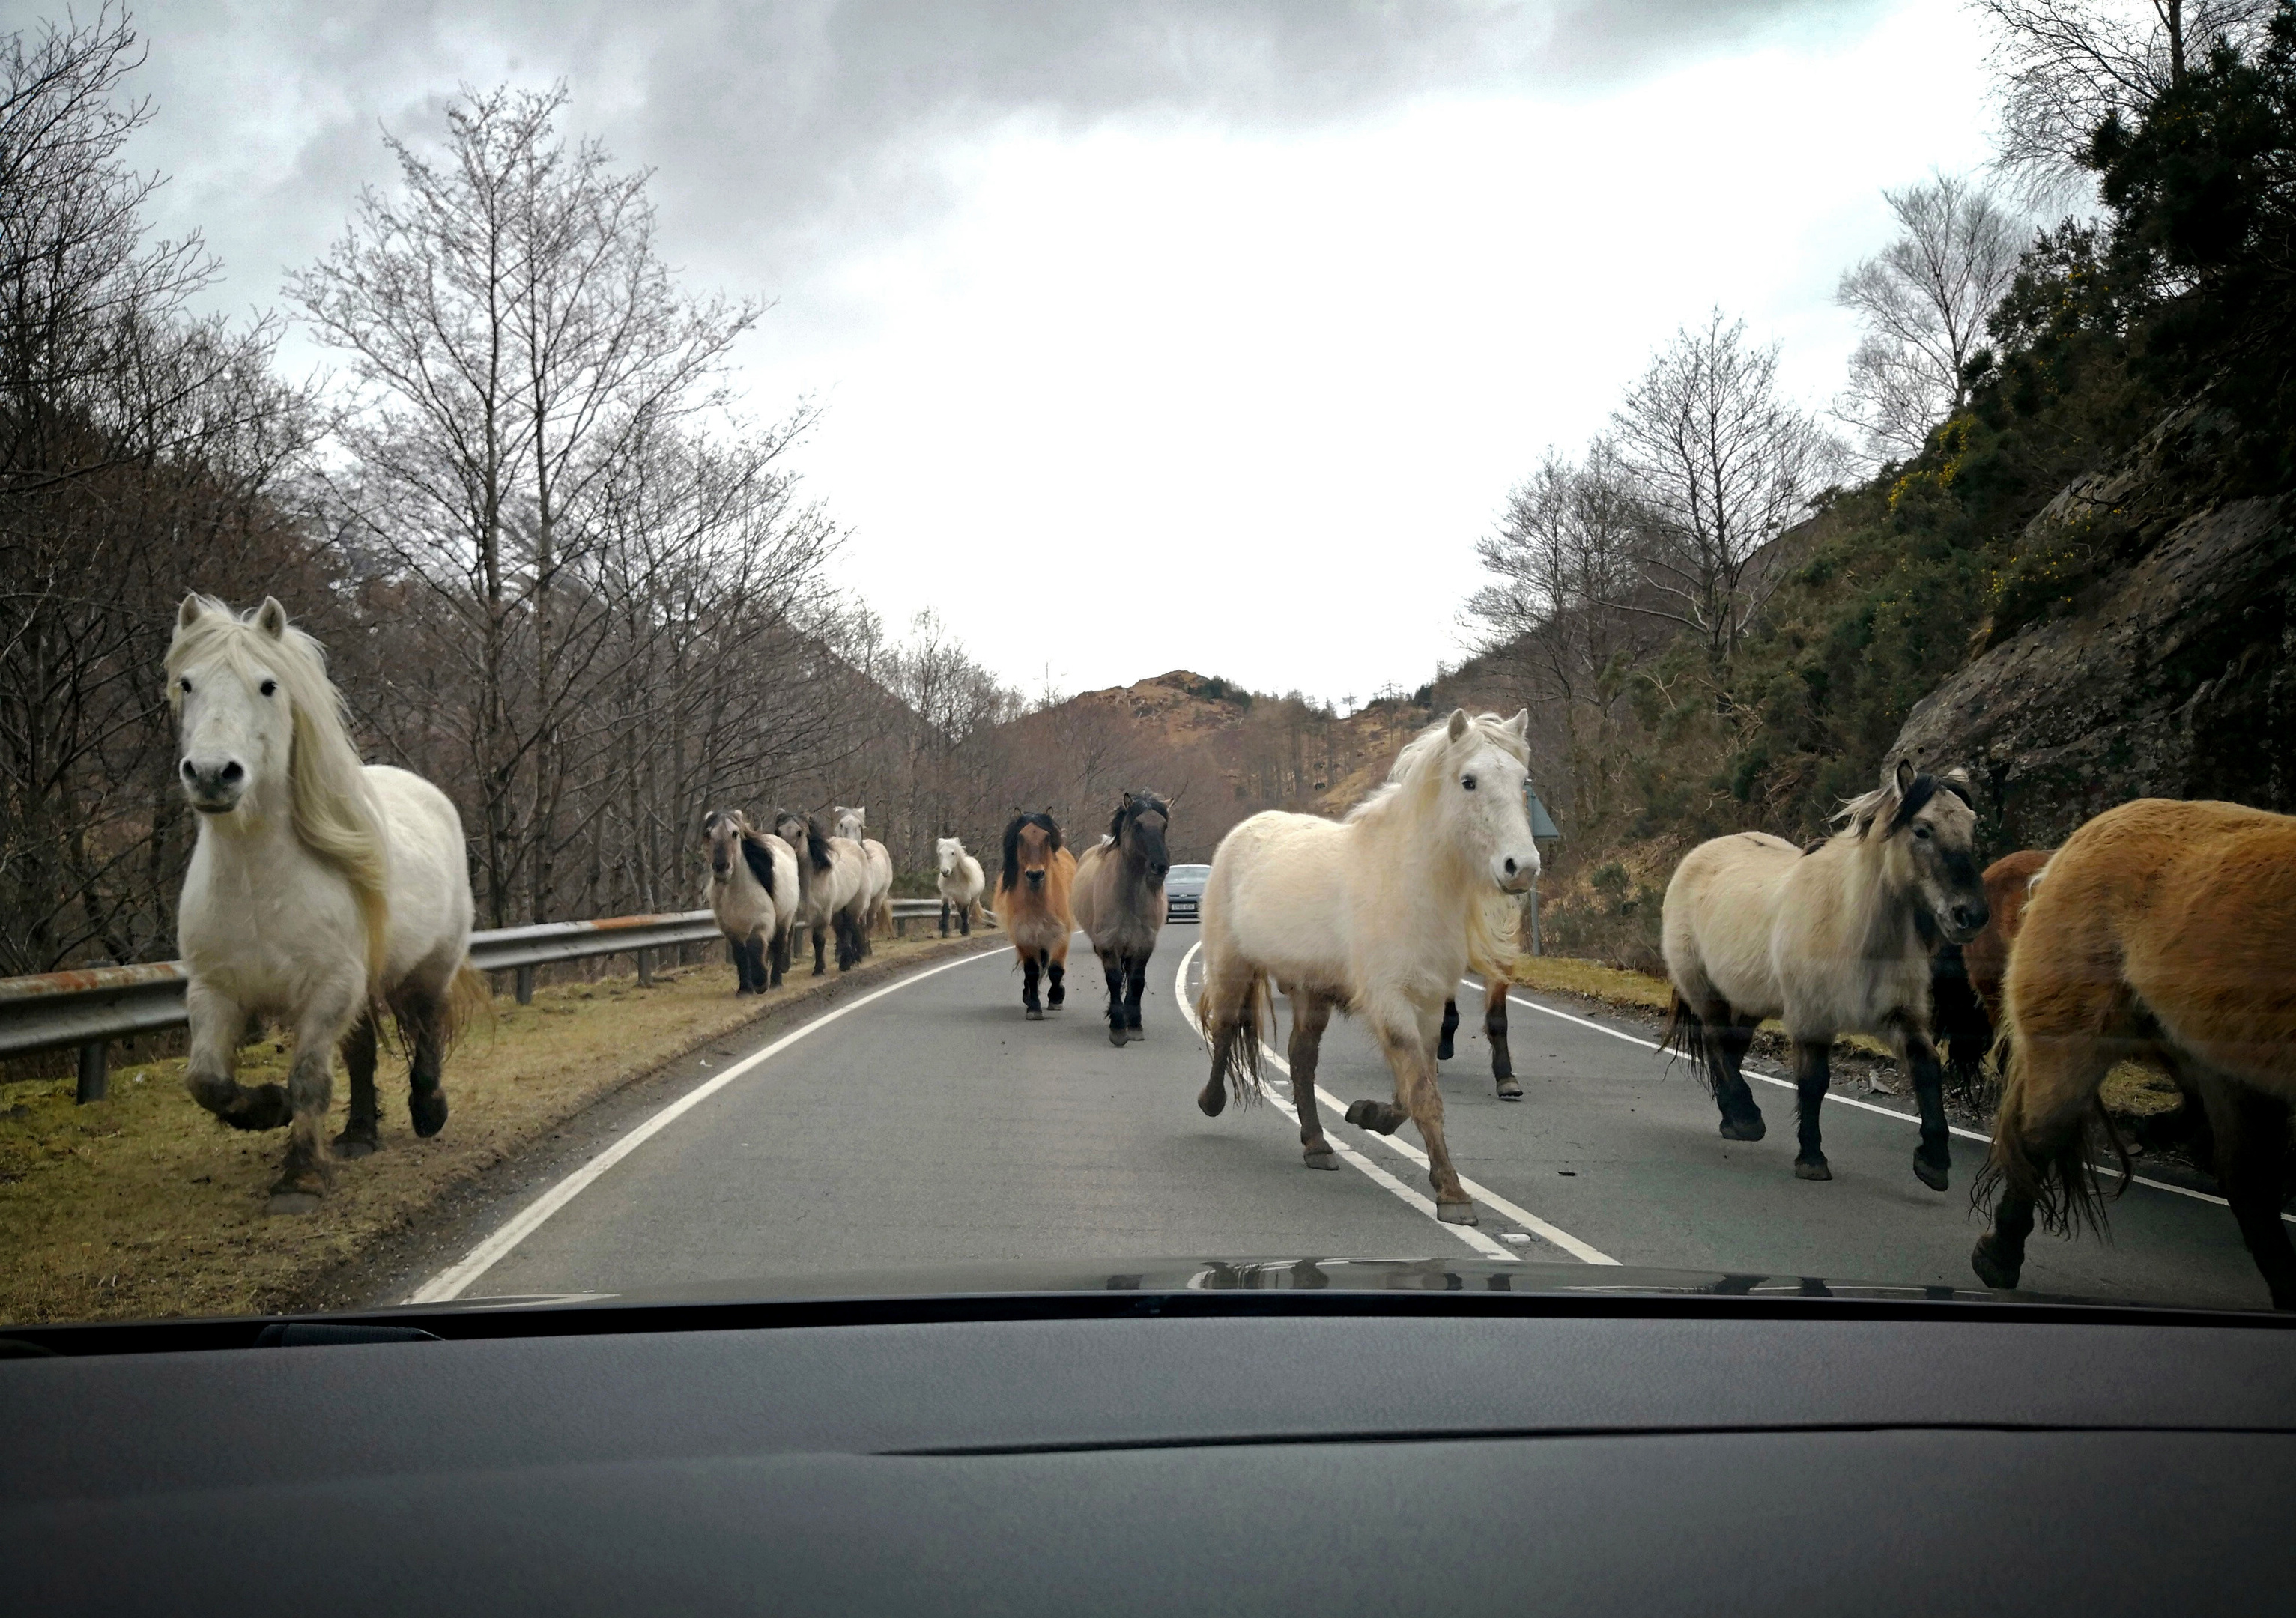 Wild horses running on the road between Kyle of Lochalsh and Dundreggan near the Isle of Skye.